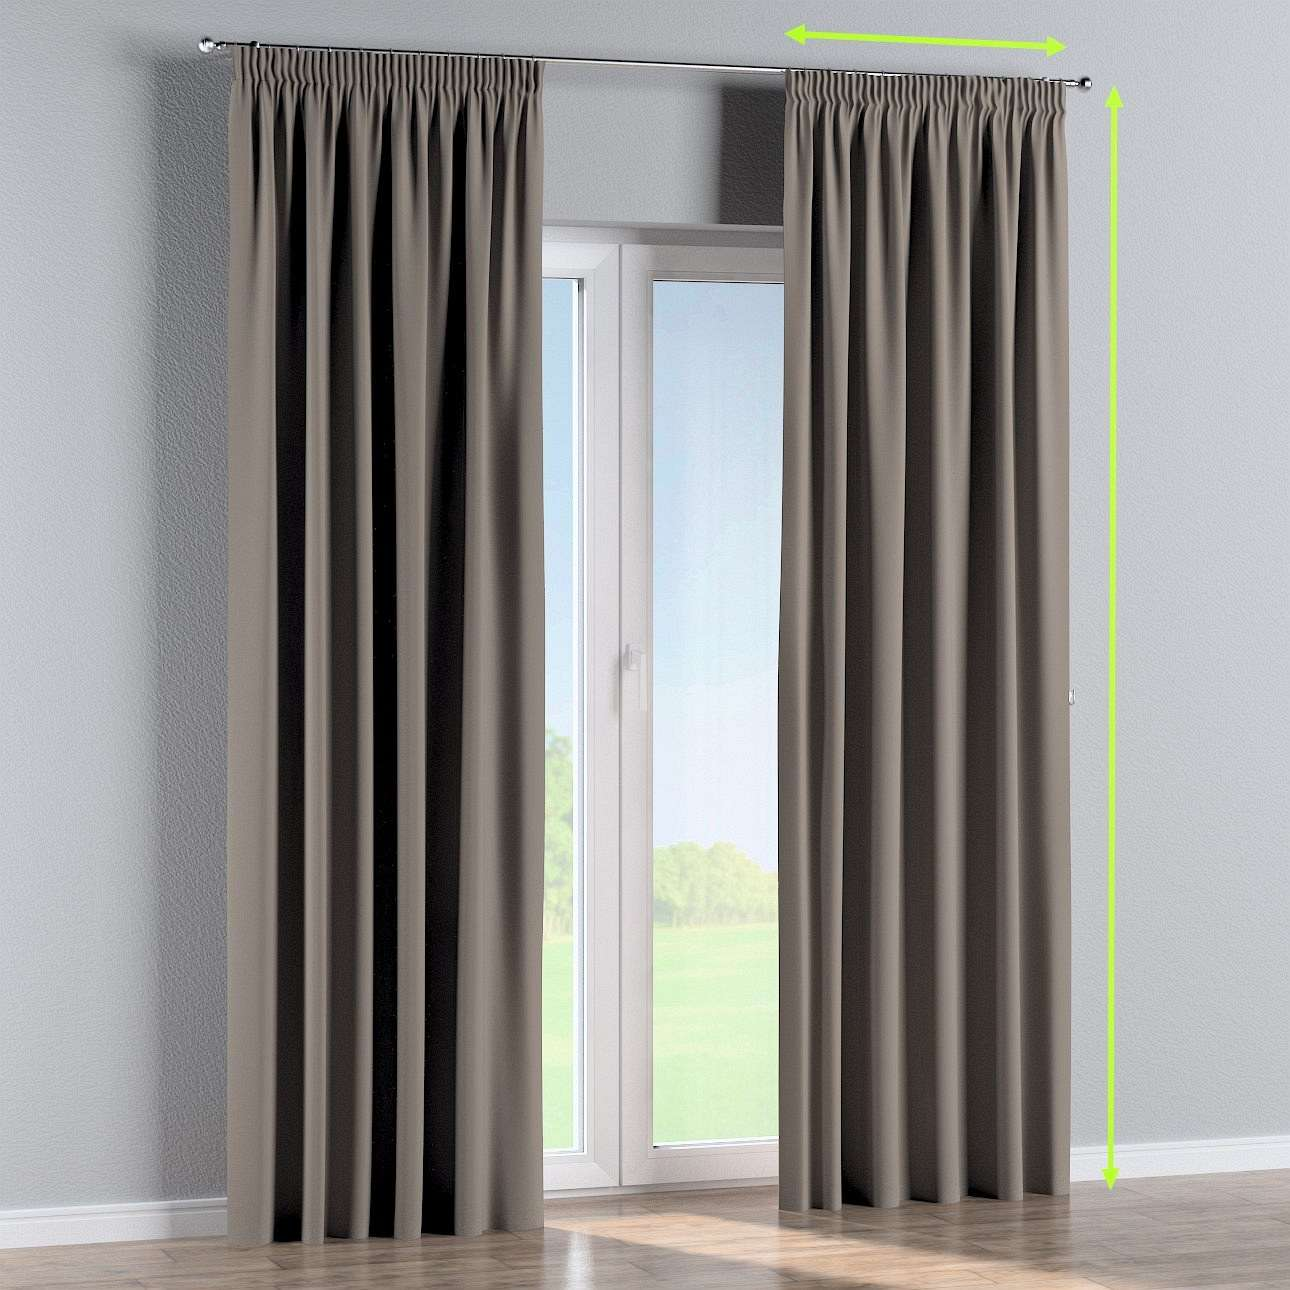 Blackout pencil pleat curtains in collection Blackout, fabric: 269-81